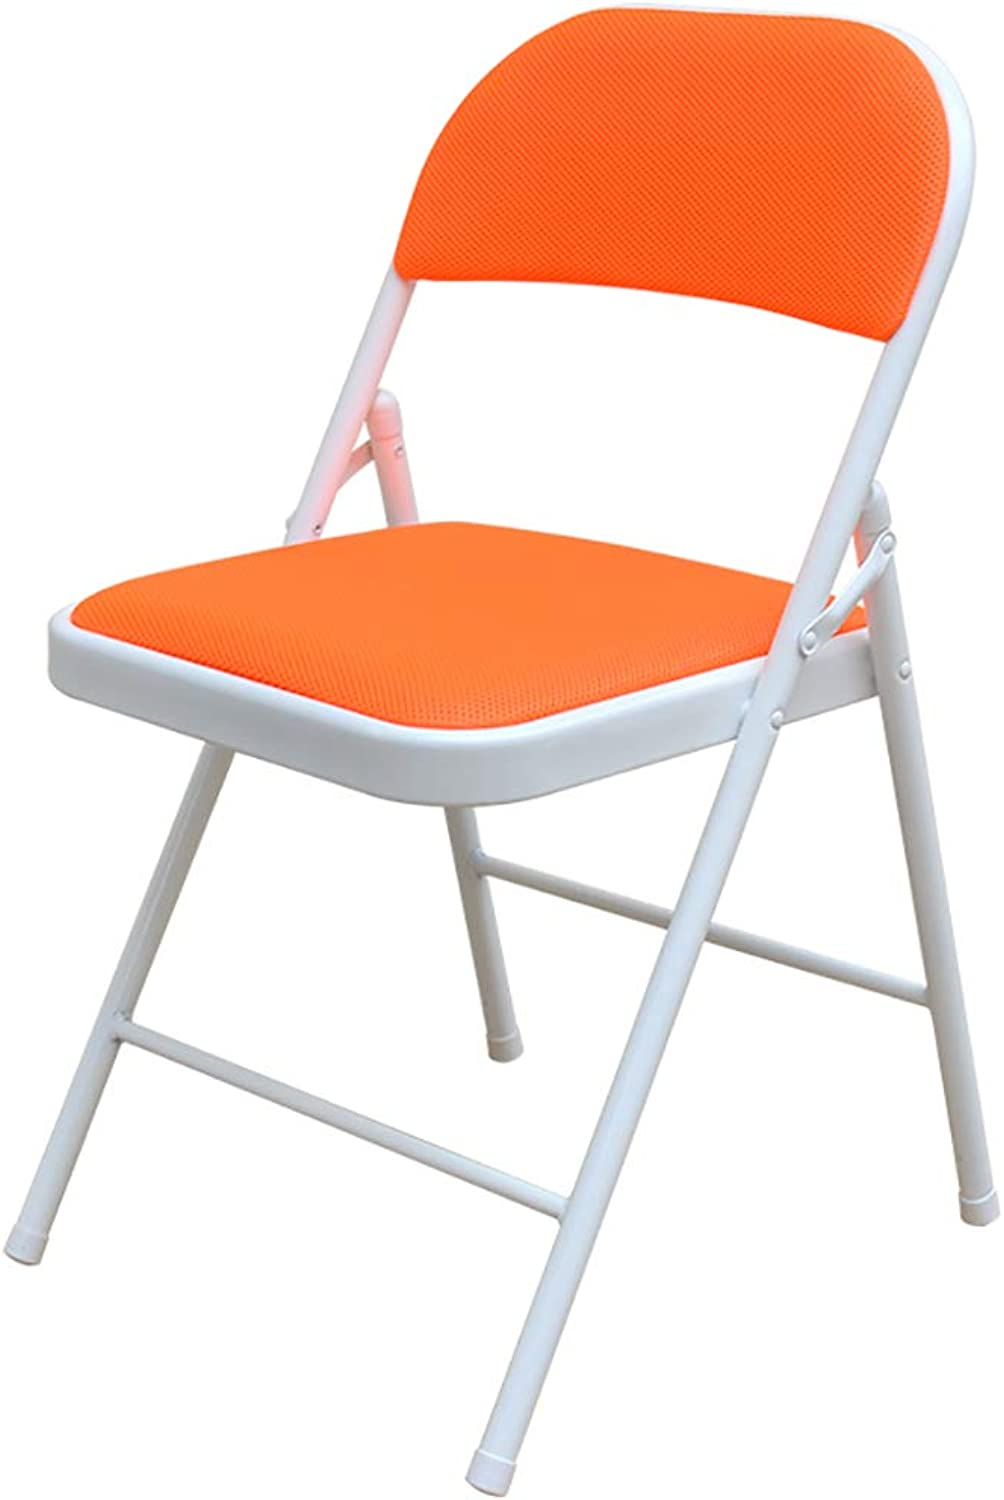 XHLZDY Folding Chair, Office Chair Stool Home Computer Chair Staff Chair Folding Chair (45×46×79cm) (color   orange)